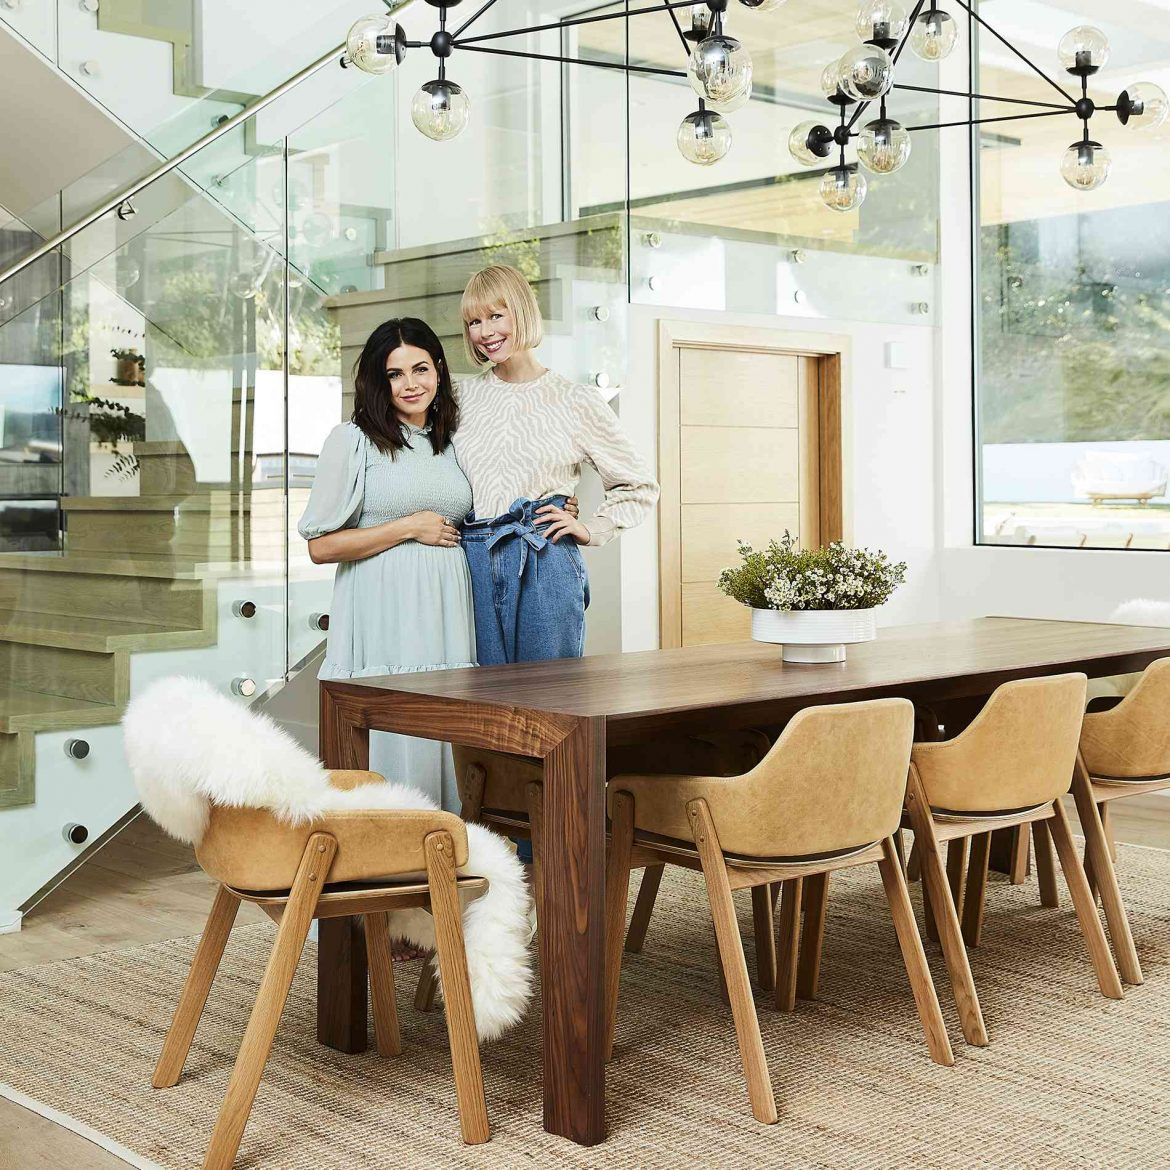 jenna dewan Step Inside Jenna Dewan's Home In LA step inside jenna dewans home 6 scaled